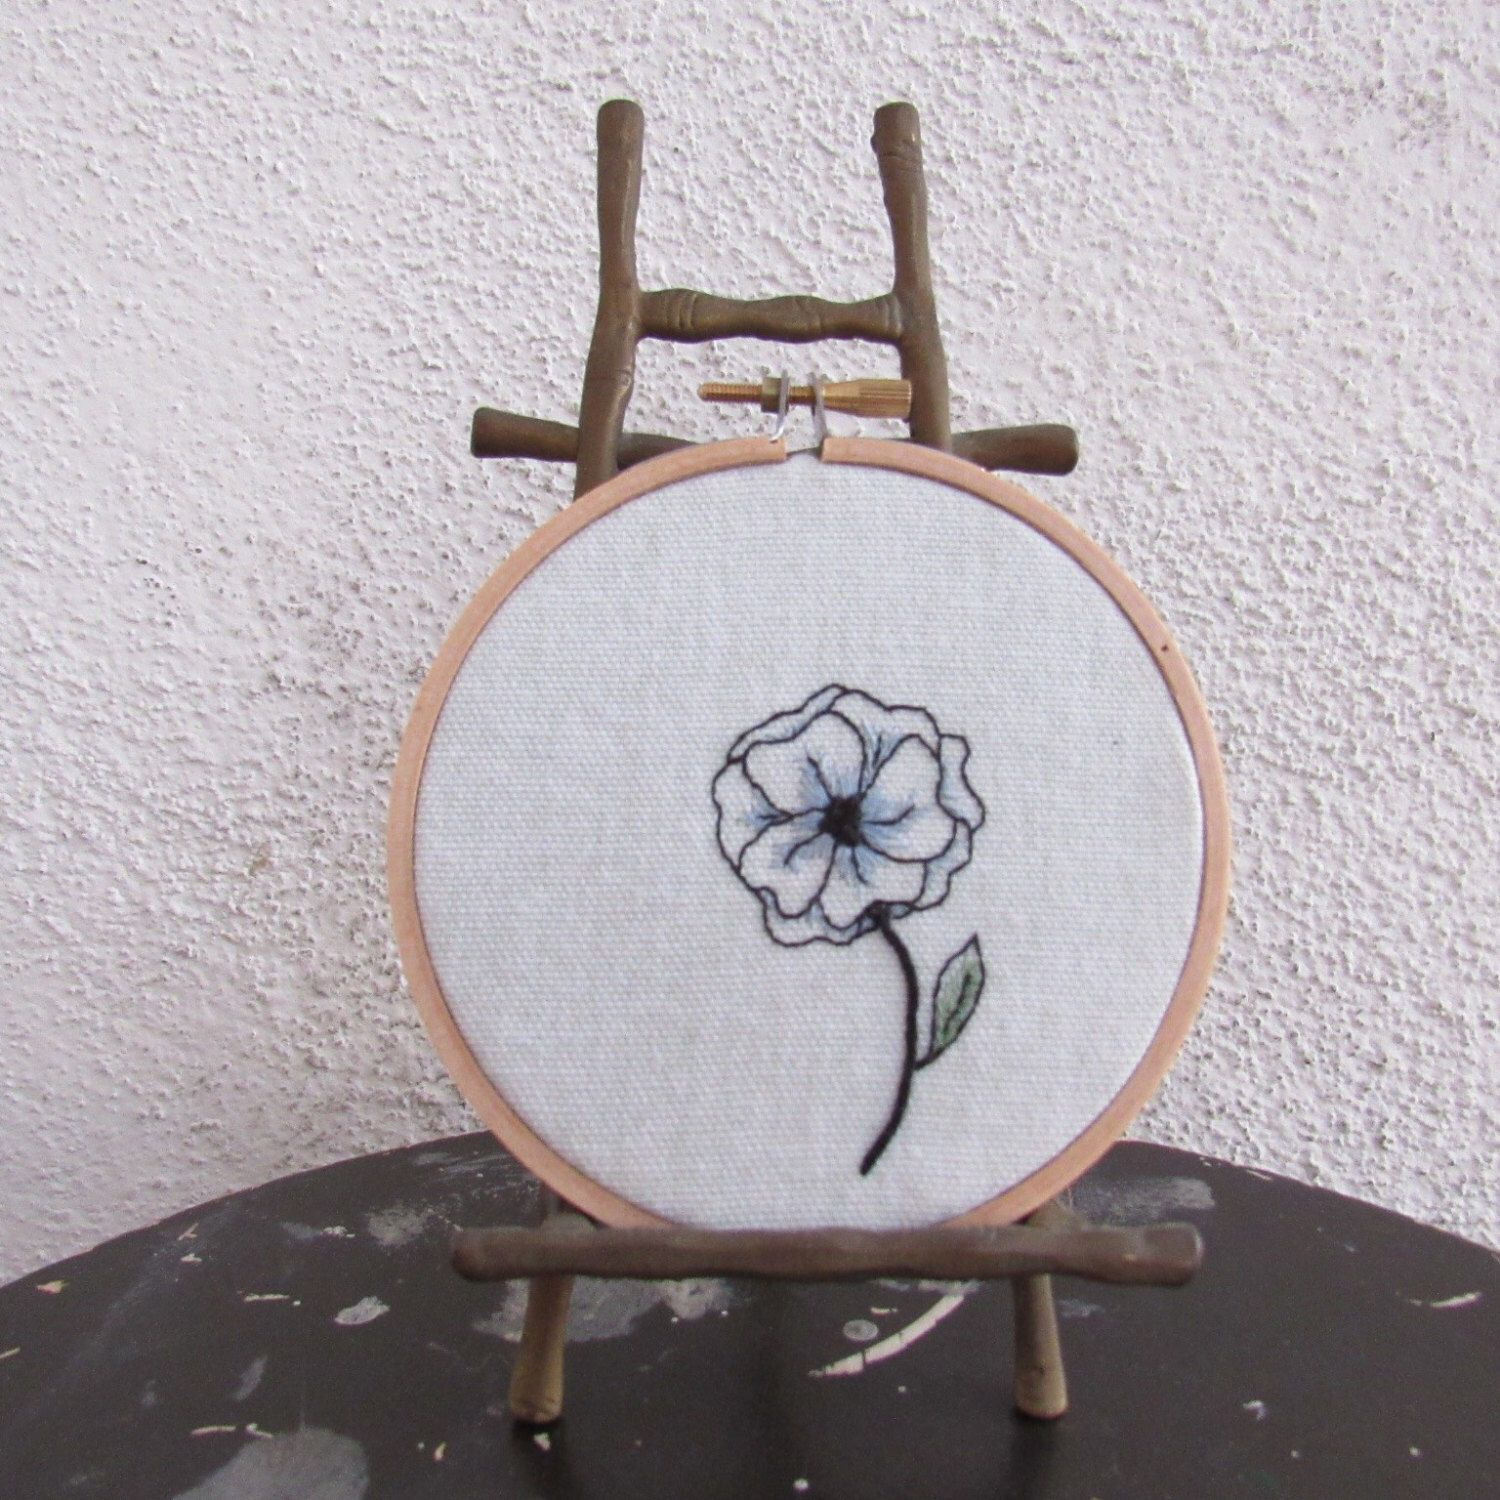 "Hoop Art ""Lonely Bloom"" • Embroidered Delicate Flower • Embroidery Wall Hanging / Home Decor in 4"" Frame by loudmouthmarket on Etsy https://www.etsy.com/listing/476001241/hoop-art-lonely-bloom-embroidered"